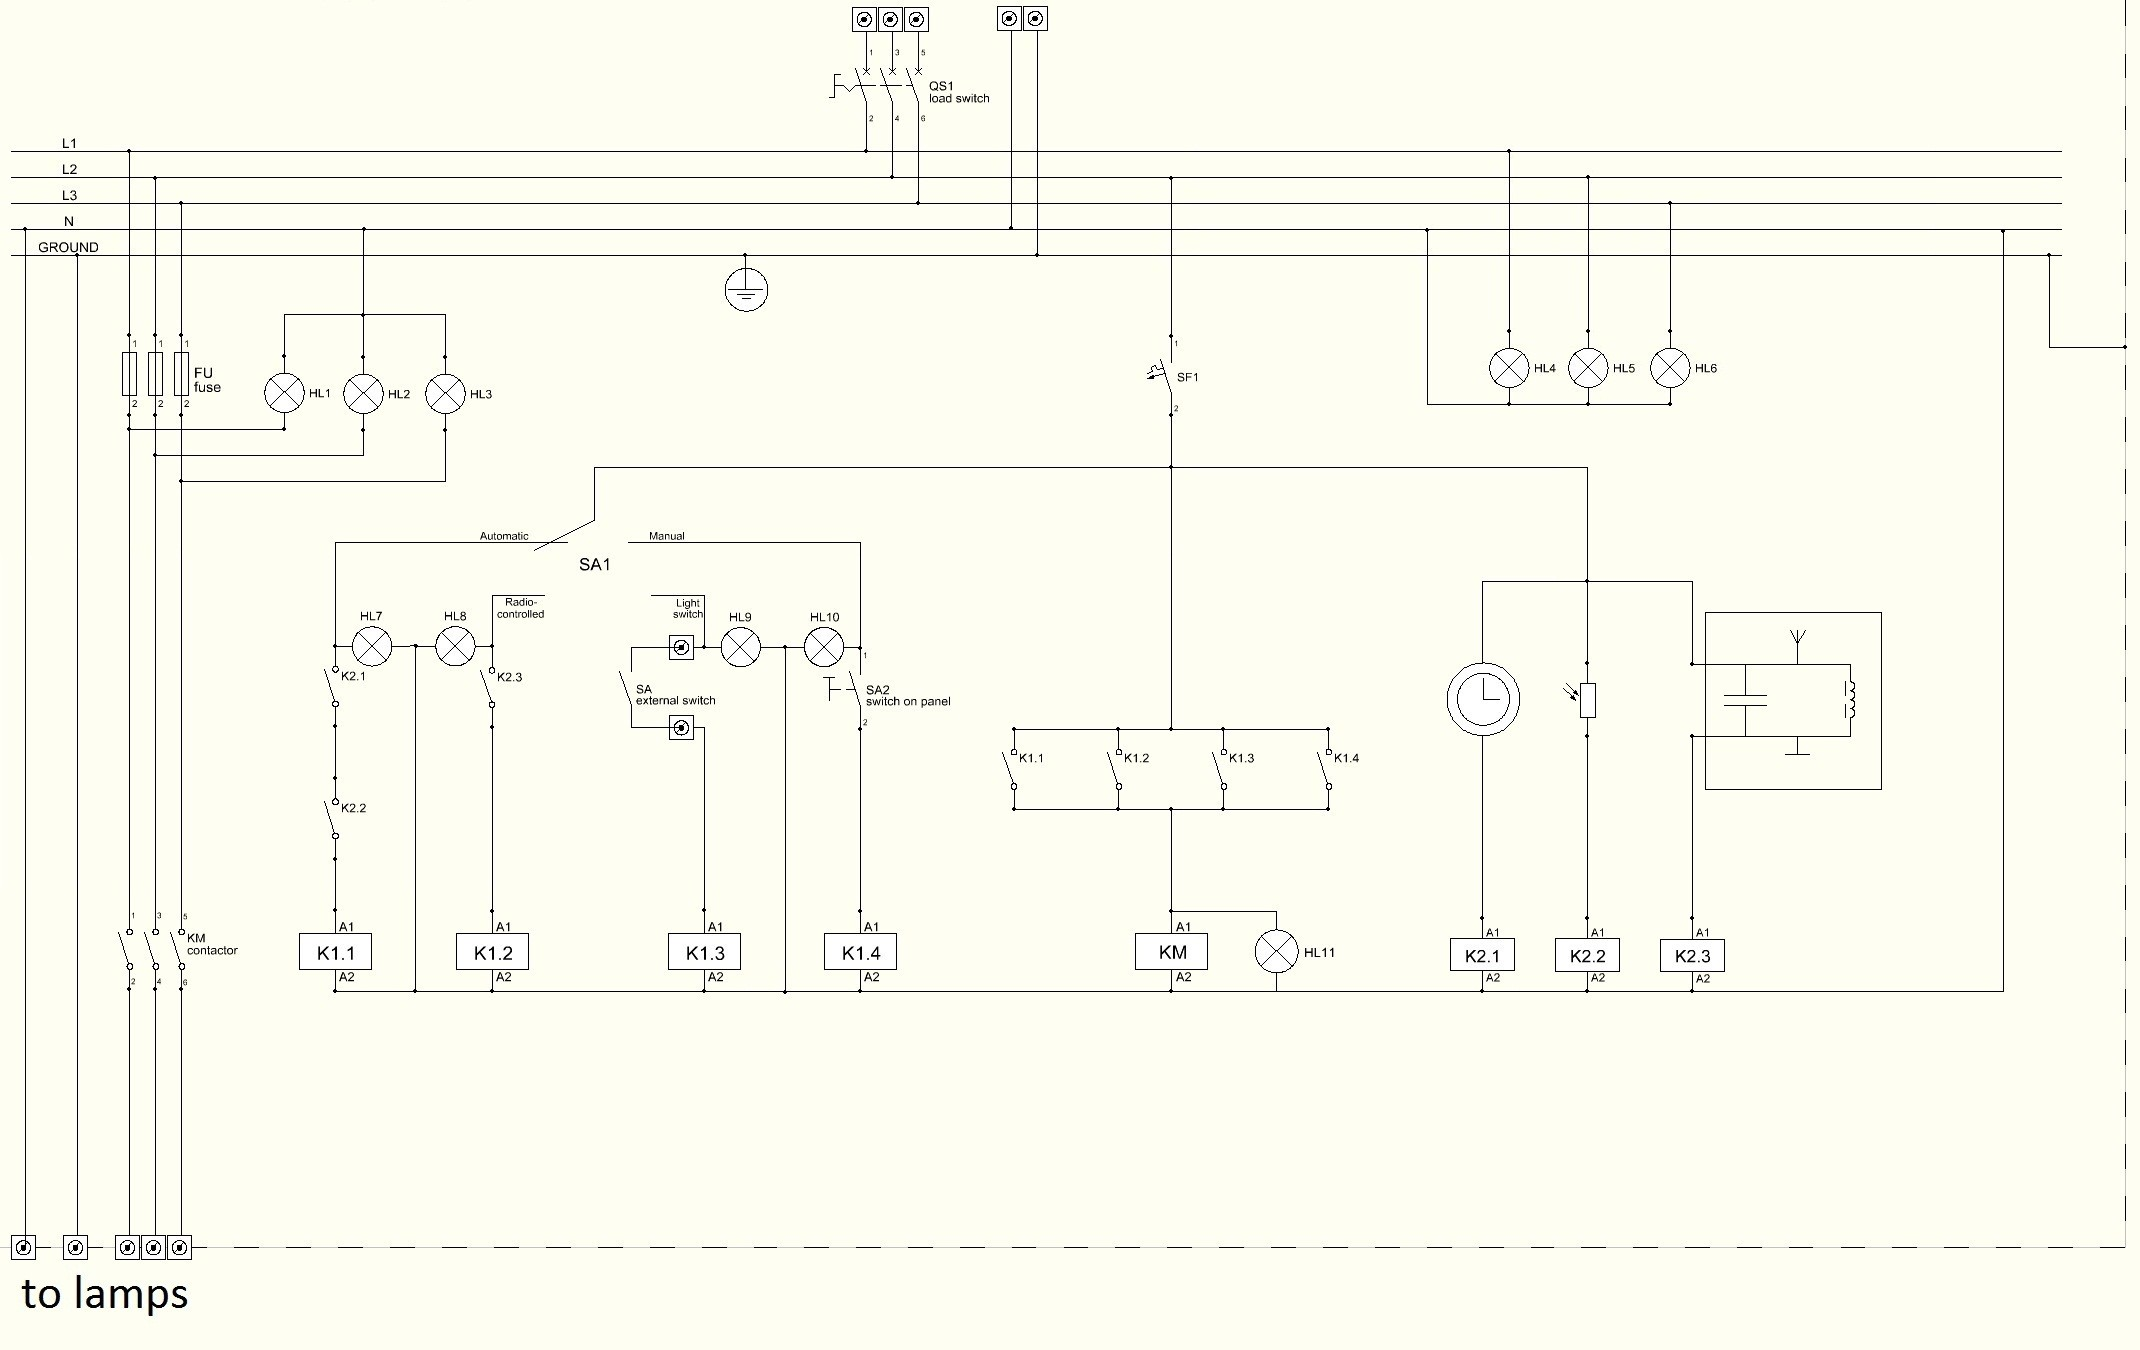 Wiring Diagram For Residential Lighting Download Diagrams 208 Starter On Control Rh 167 249 254 Guitar